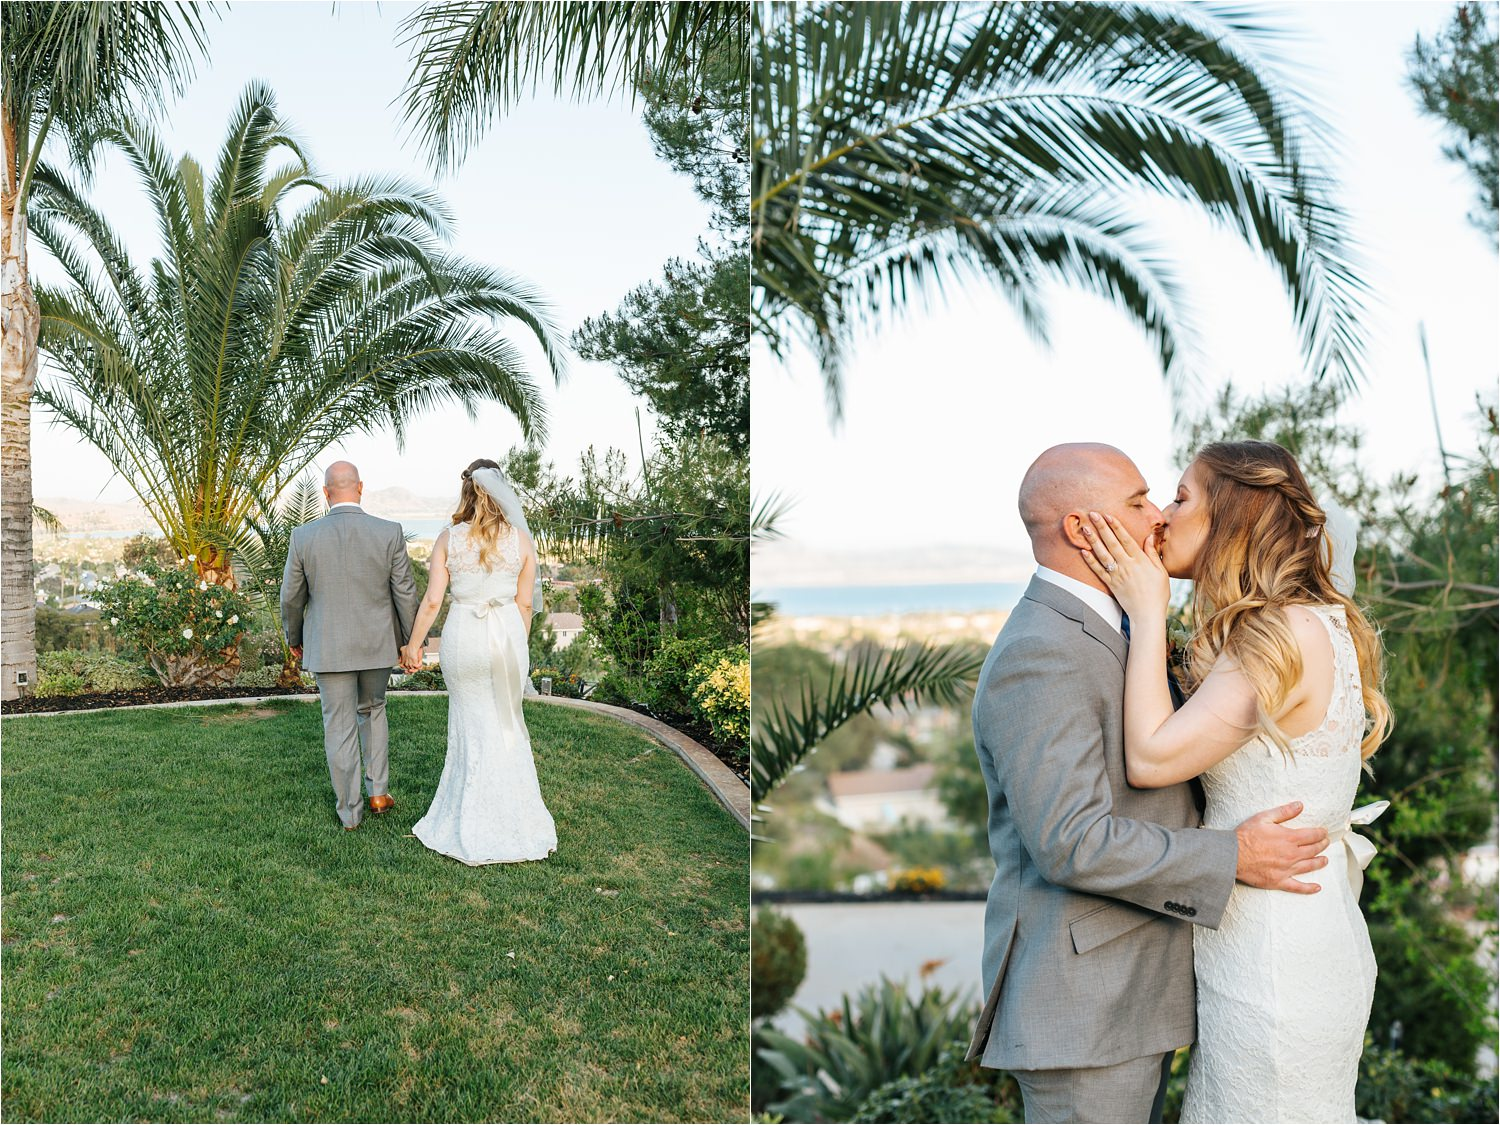 Wedding Photographer serving San Diego, Los Angeles and Orange County - https://brittneyhannonphotography.com